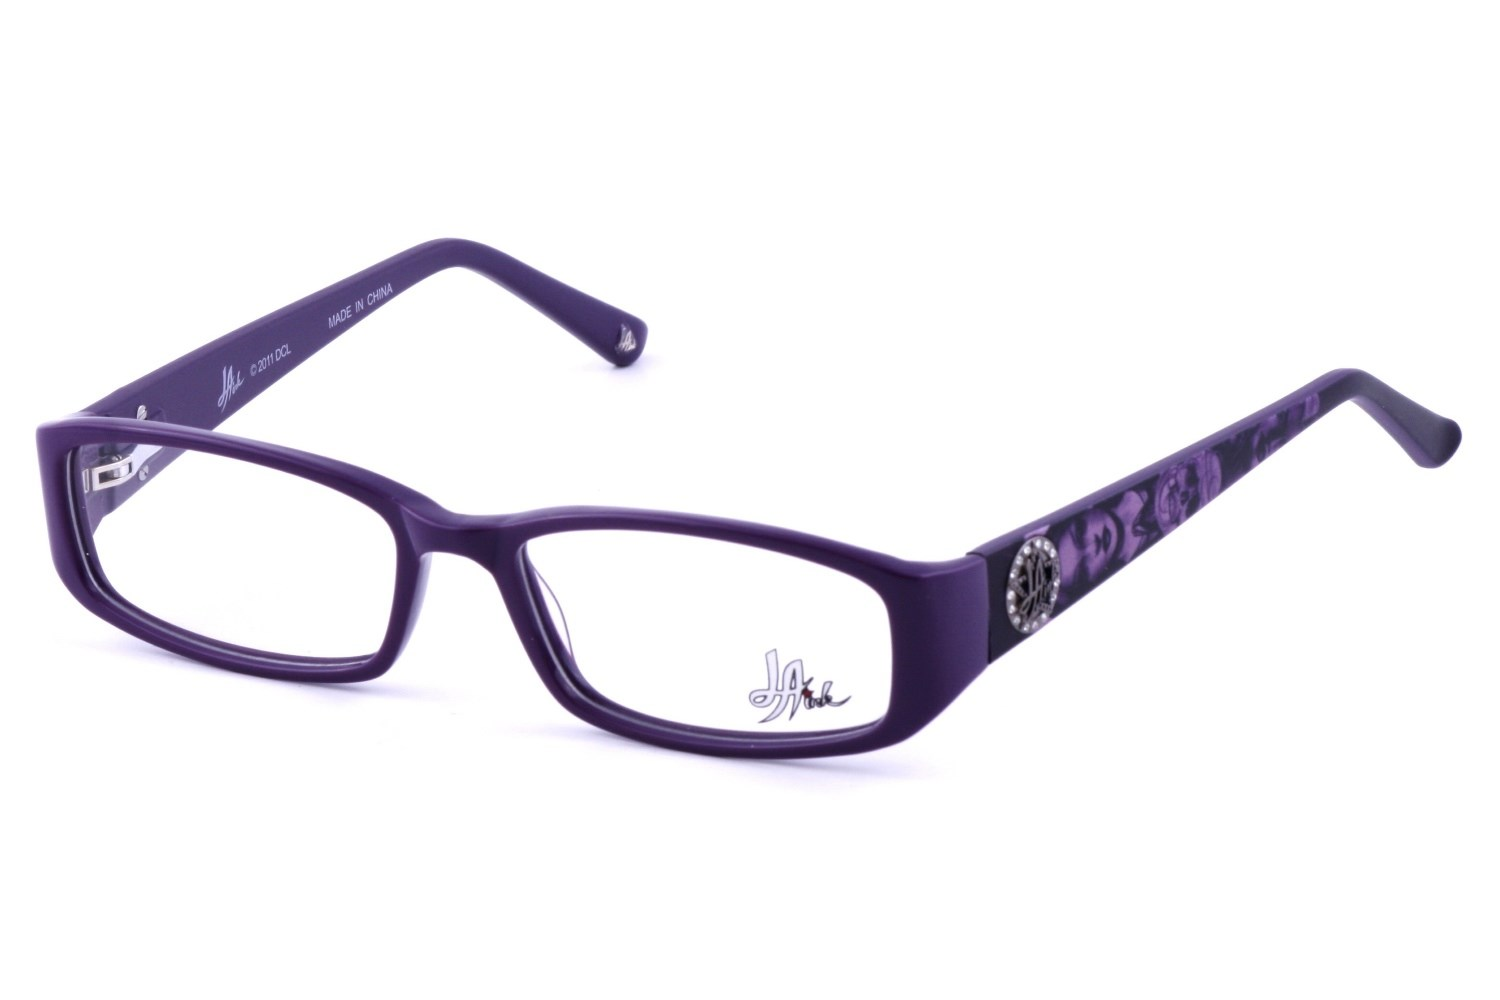 LA Ink 5 Prescription Eyeglasses Frames